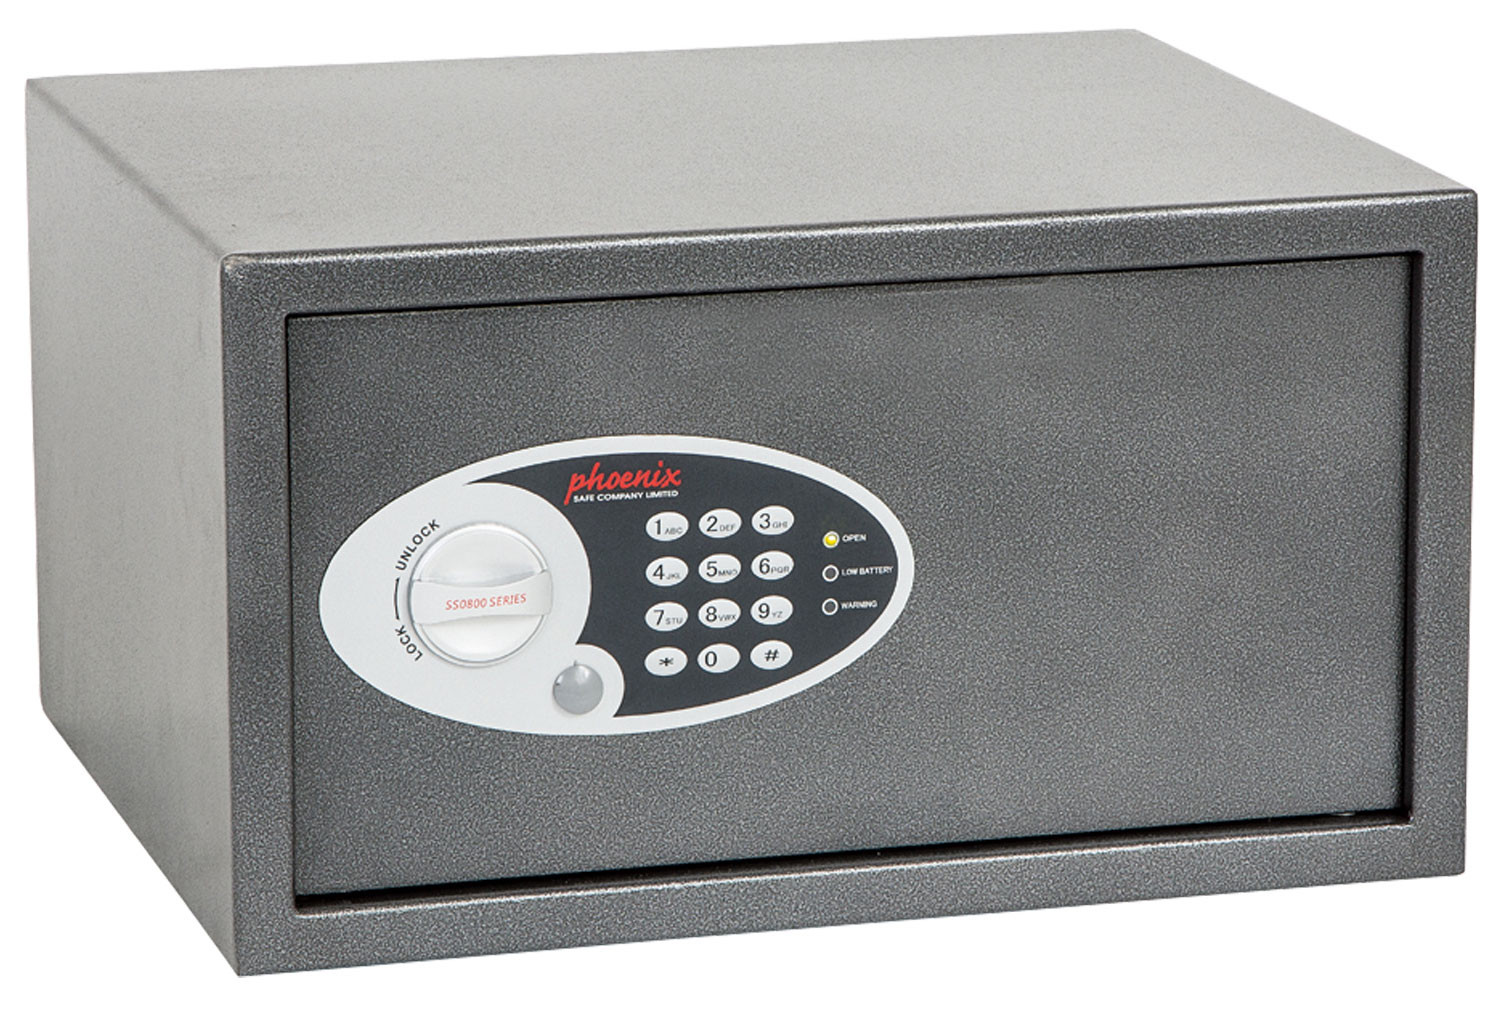 Phoenix Vela SS0803E Home Office Safe With Electronic Lock (34ltrs)